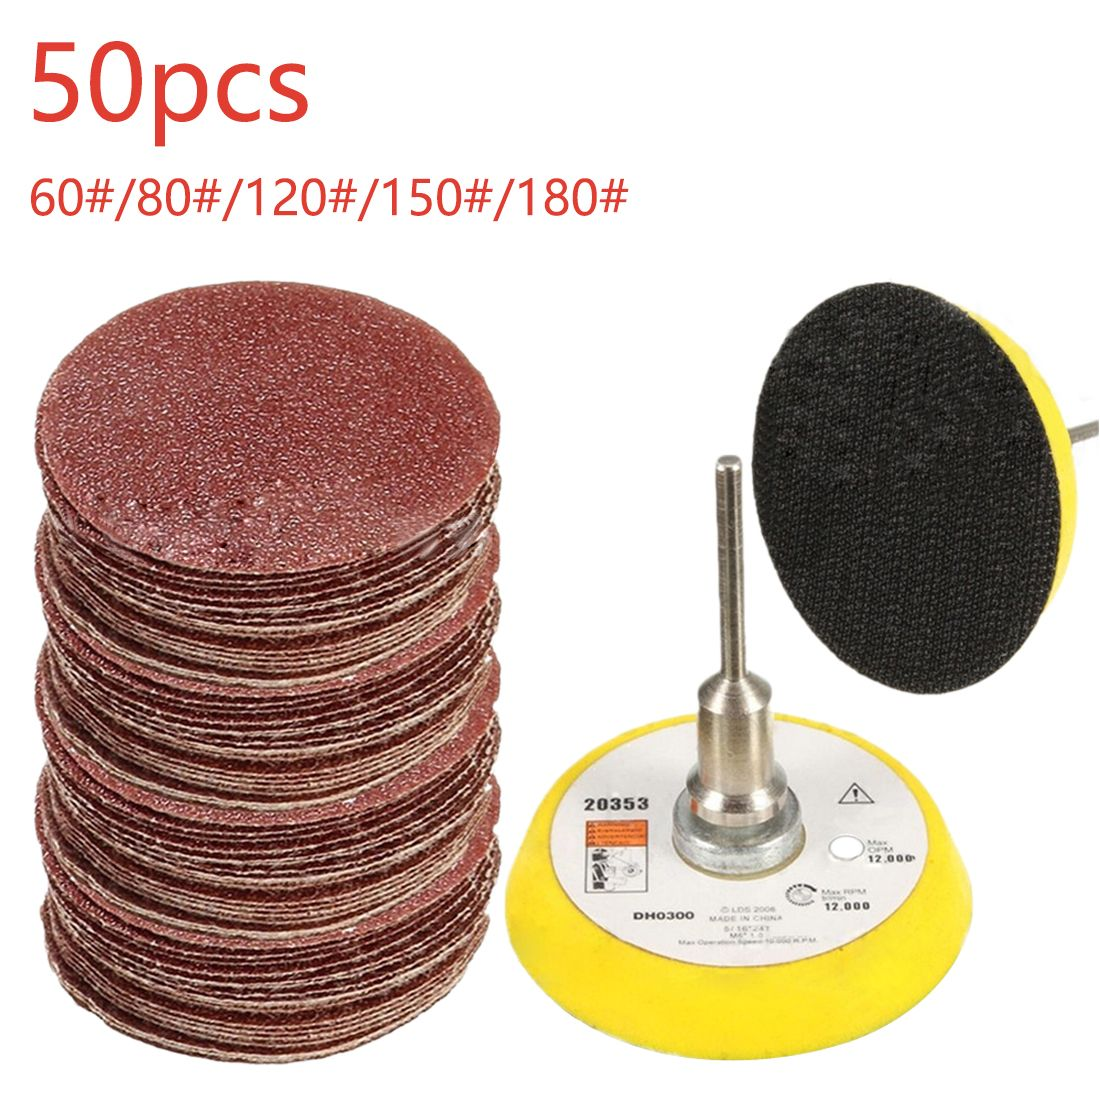 50pcs Sander Disc Sanding Pad Polishing 50mm 60 180 Grit Paper 1pc Hook Loop Plate Fit Dremel 4000 Electric Gr Dremel Tools And Accessories Wood Carving Tools